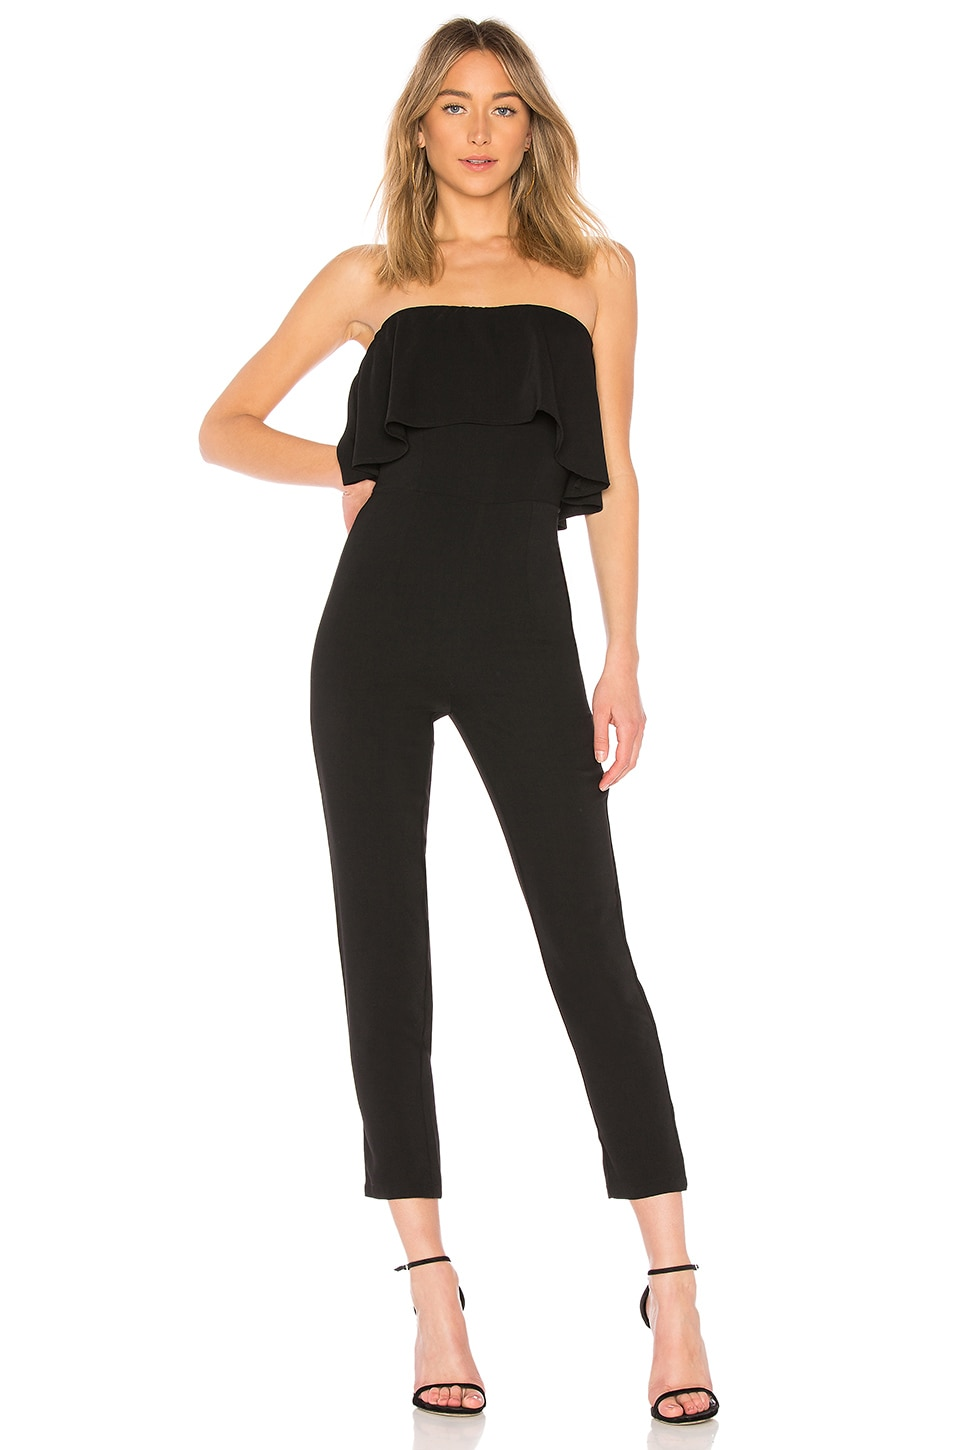 superdown Reina Ruffle Jumpsuit in Black